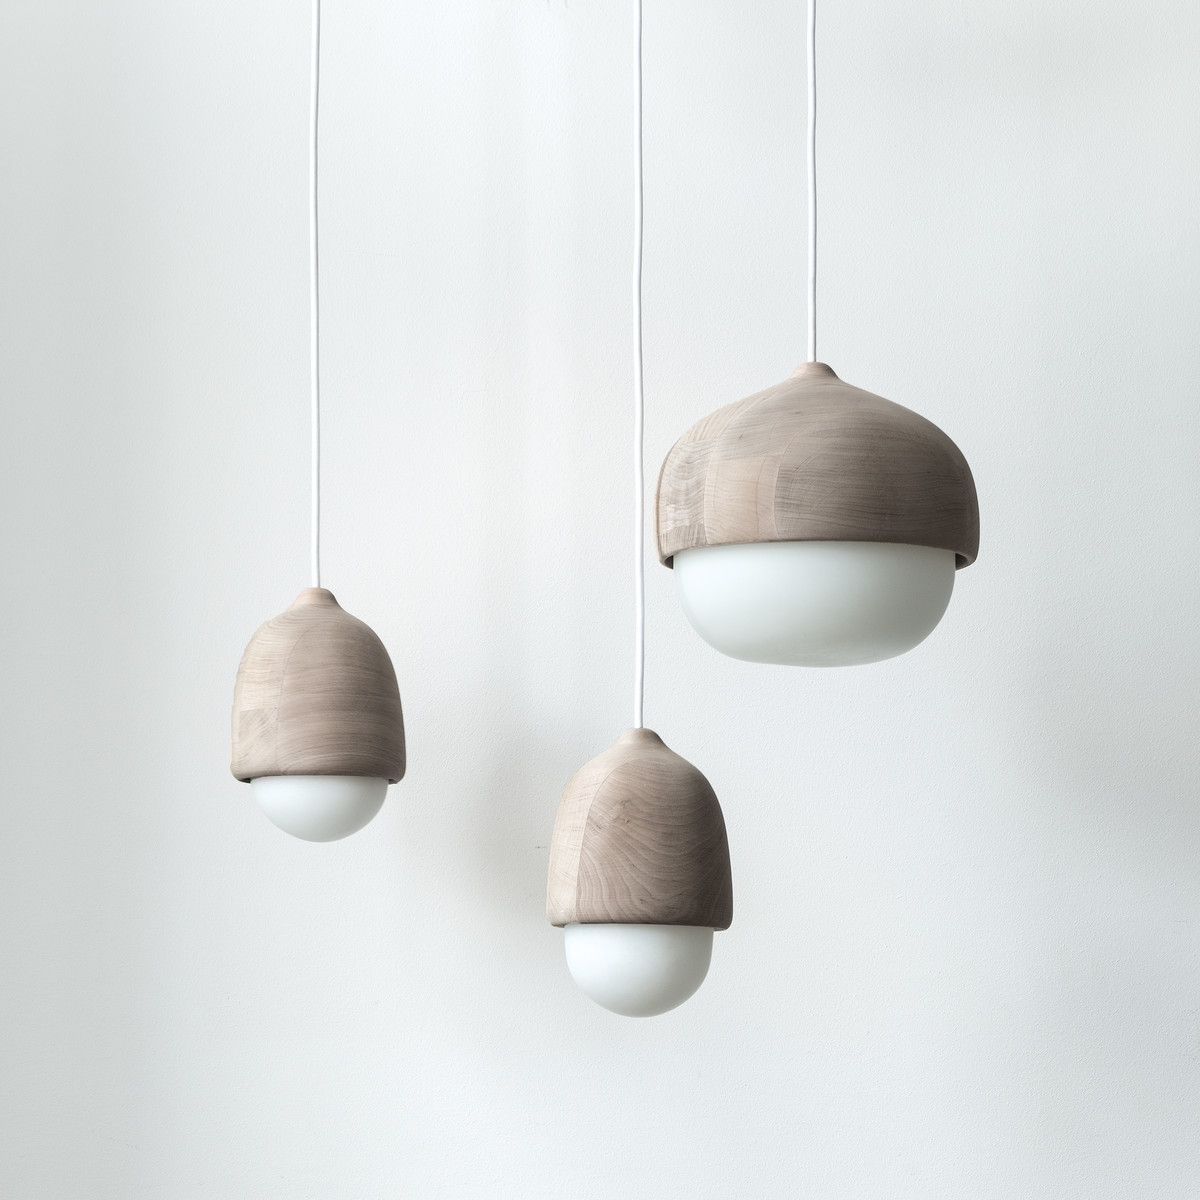 Terho Wood Pendant Lamp By Mater In The Shop Pendelleuchte Holz Pendelleuchte Lampendesign